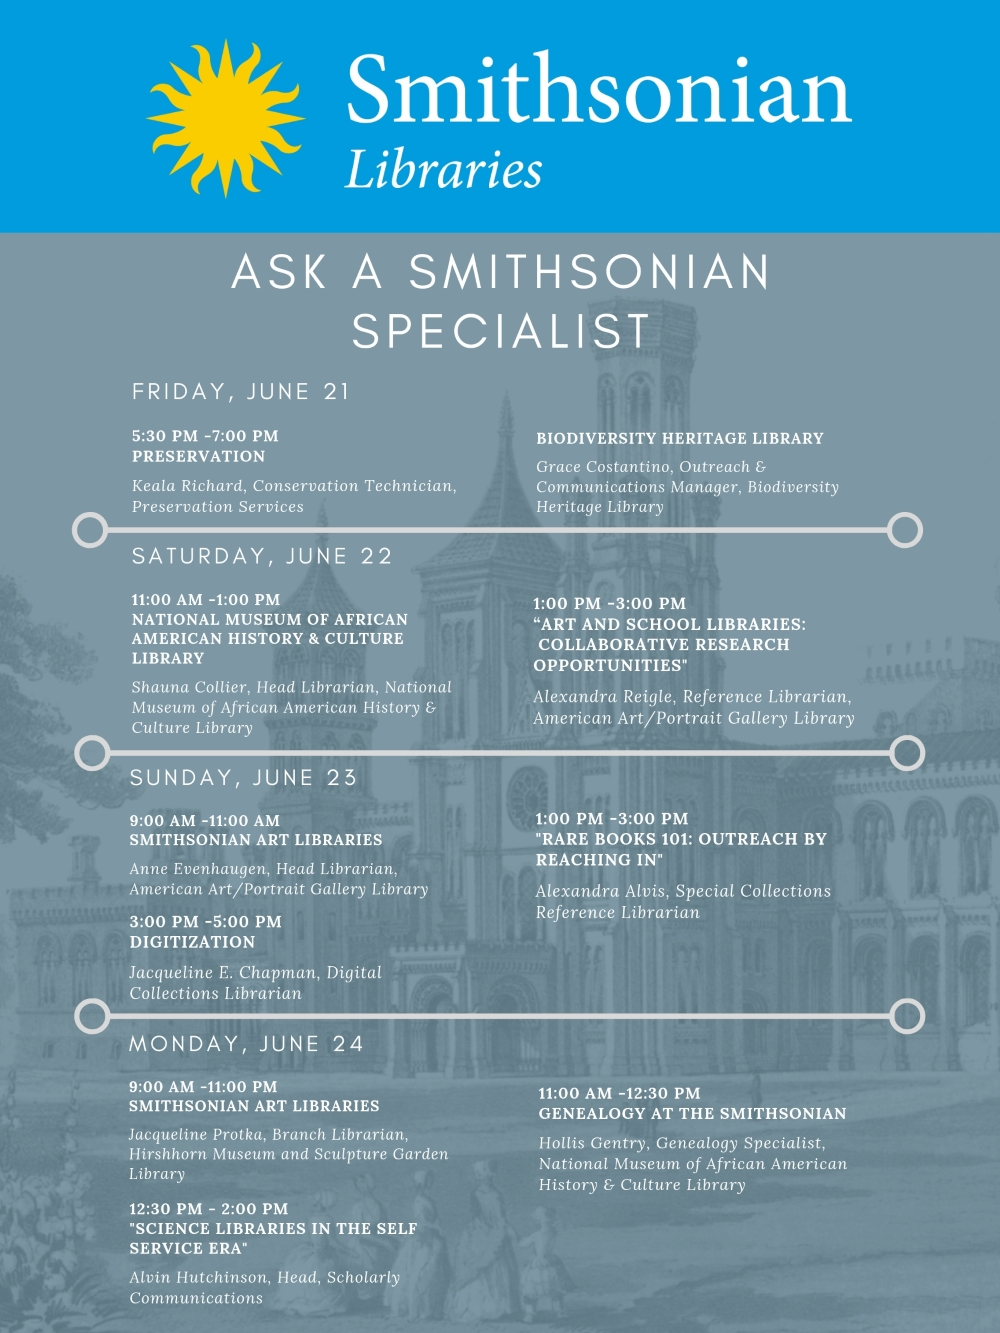 full color schedule of Ask a Smithsonian Specialist speakers